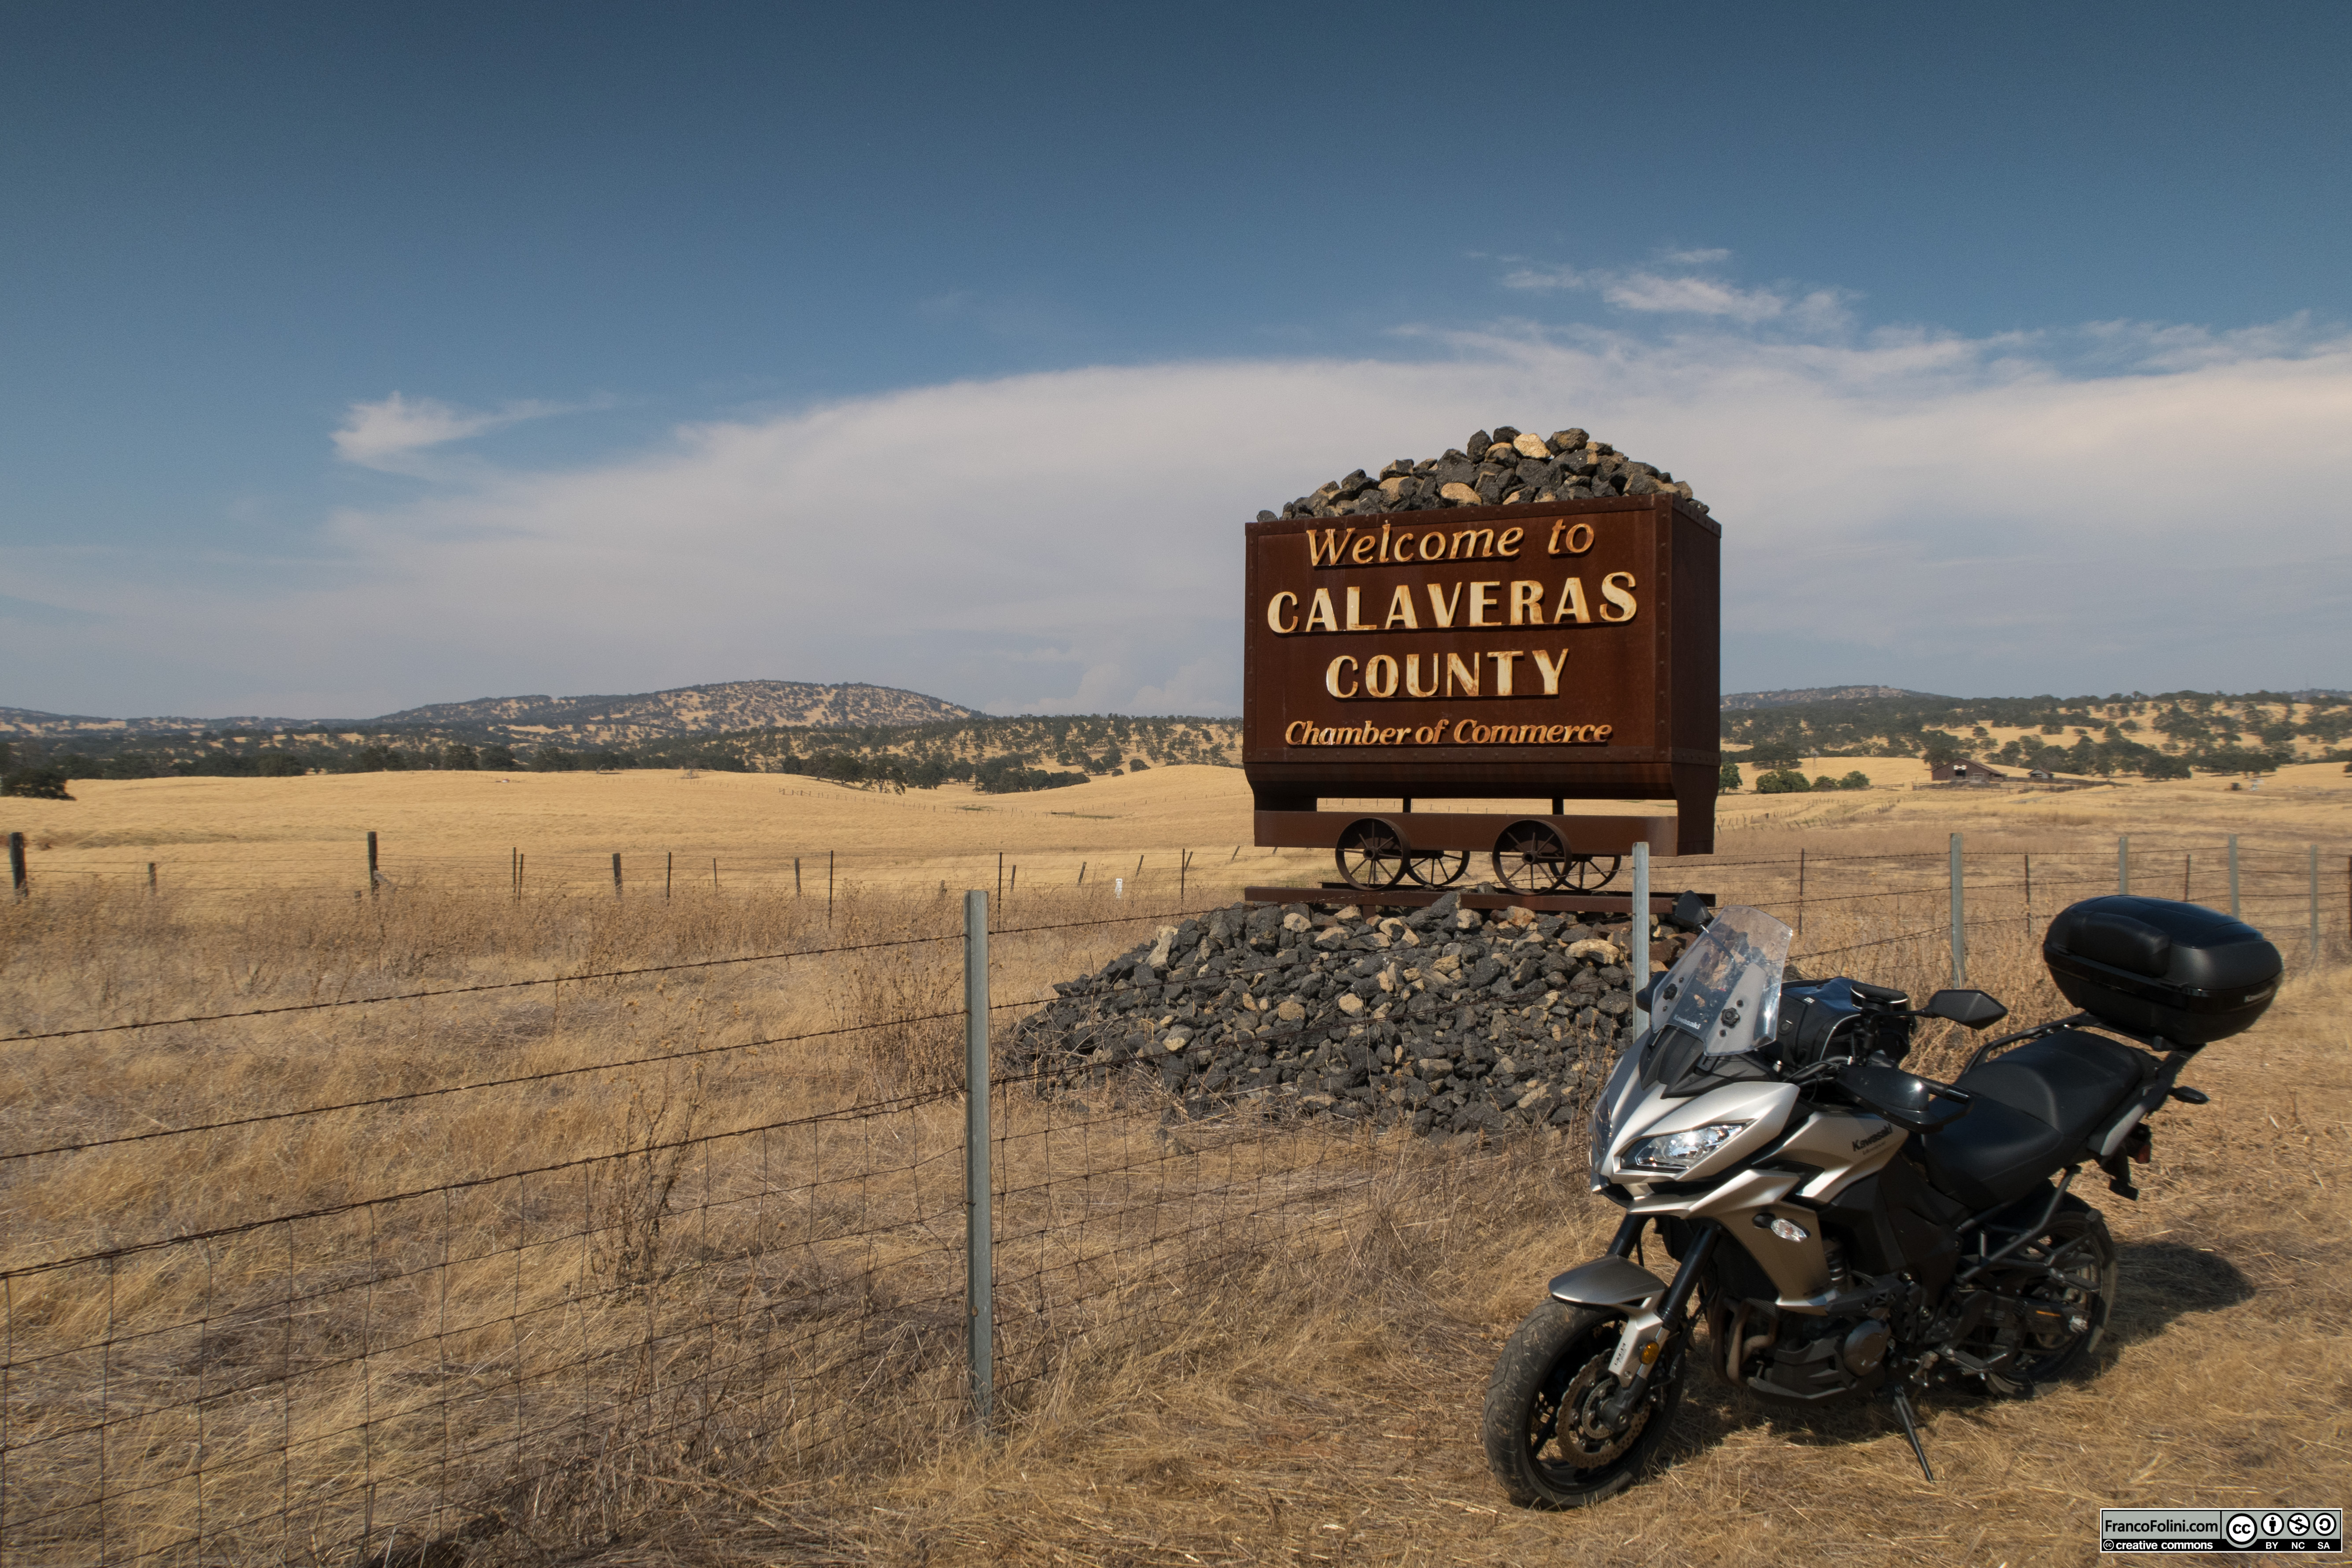 Calaveras County: welcoming sign